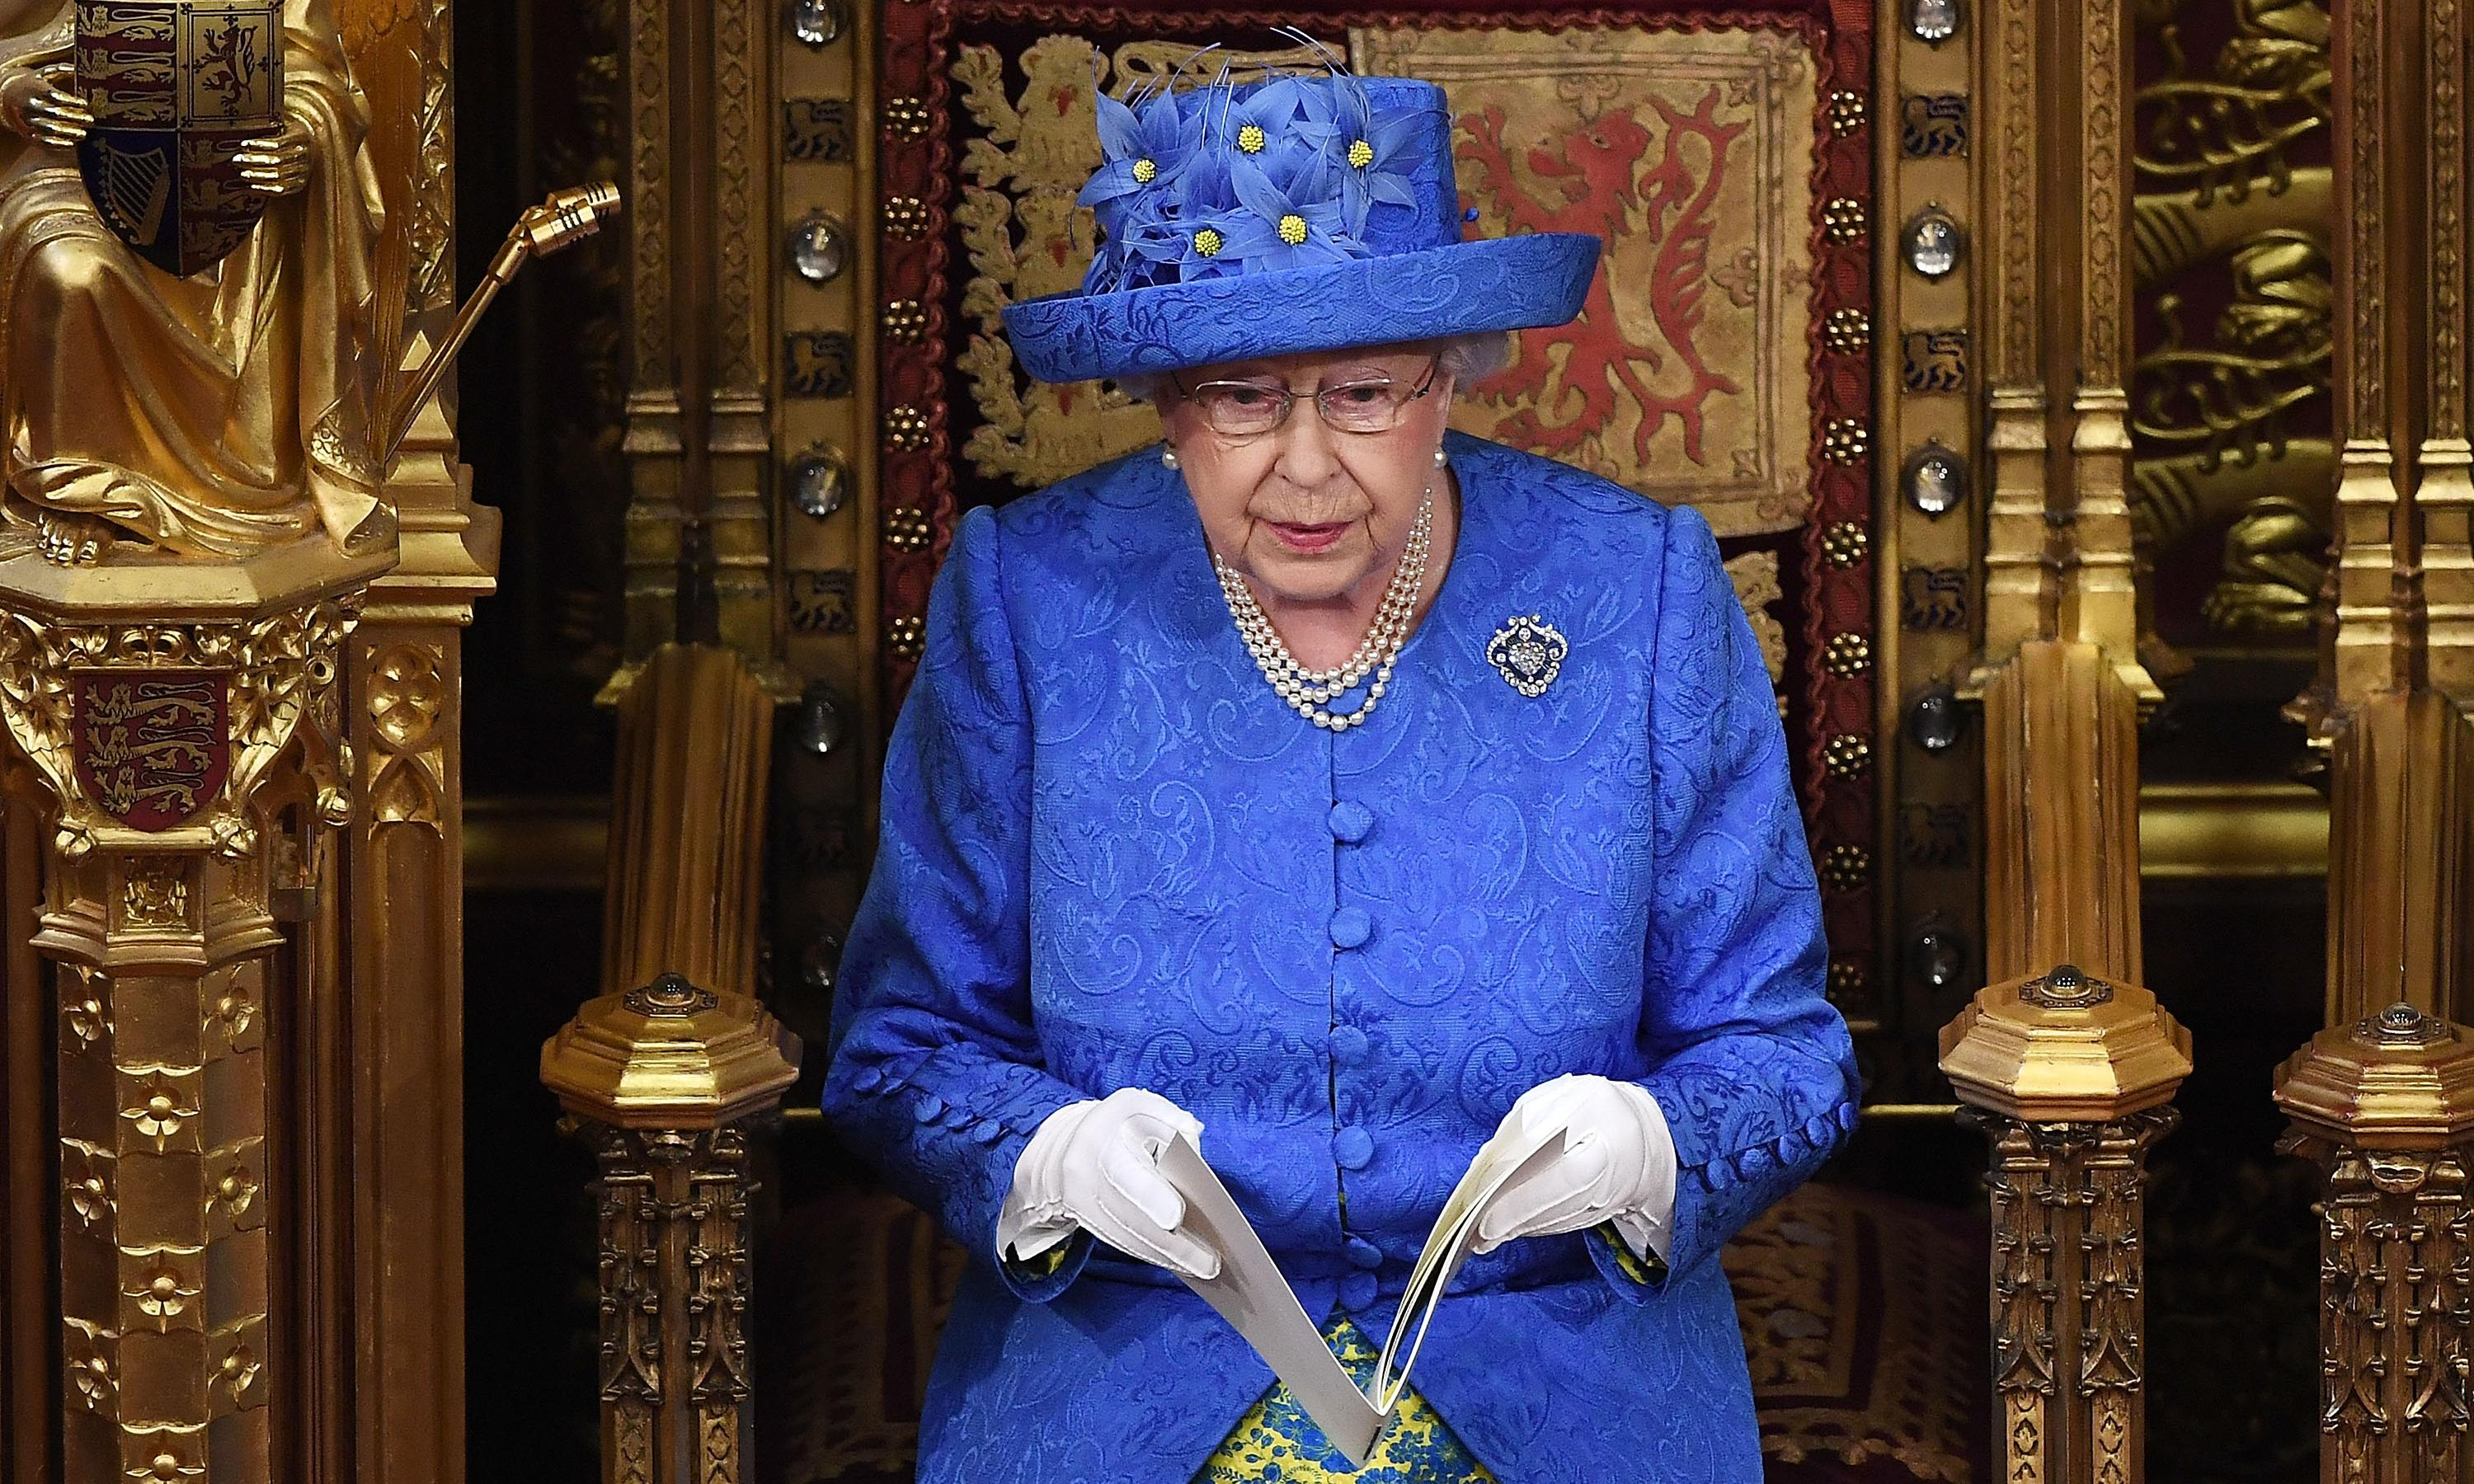 Tories aim to distract from Brexit with crime-focused Queen's speech